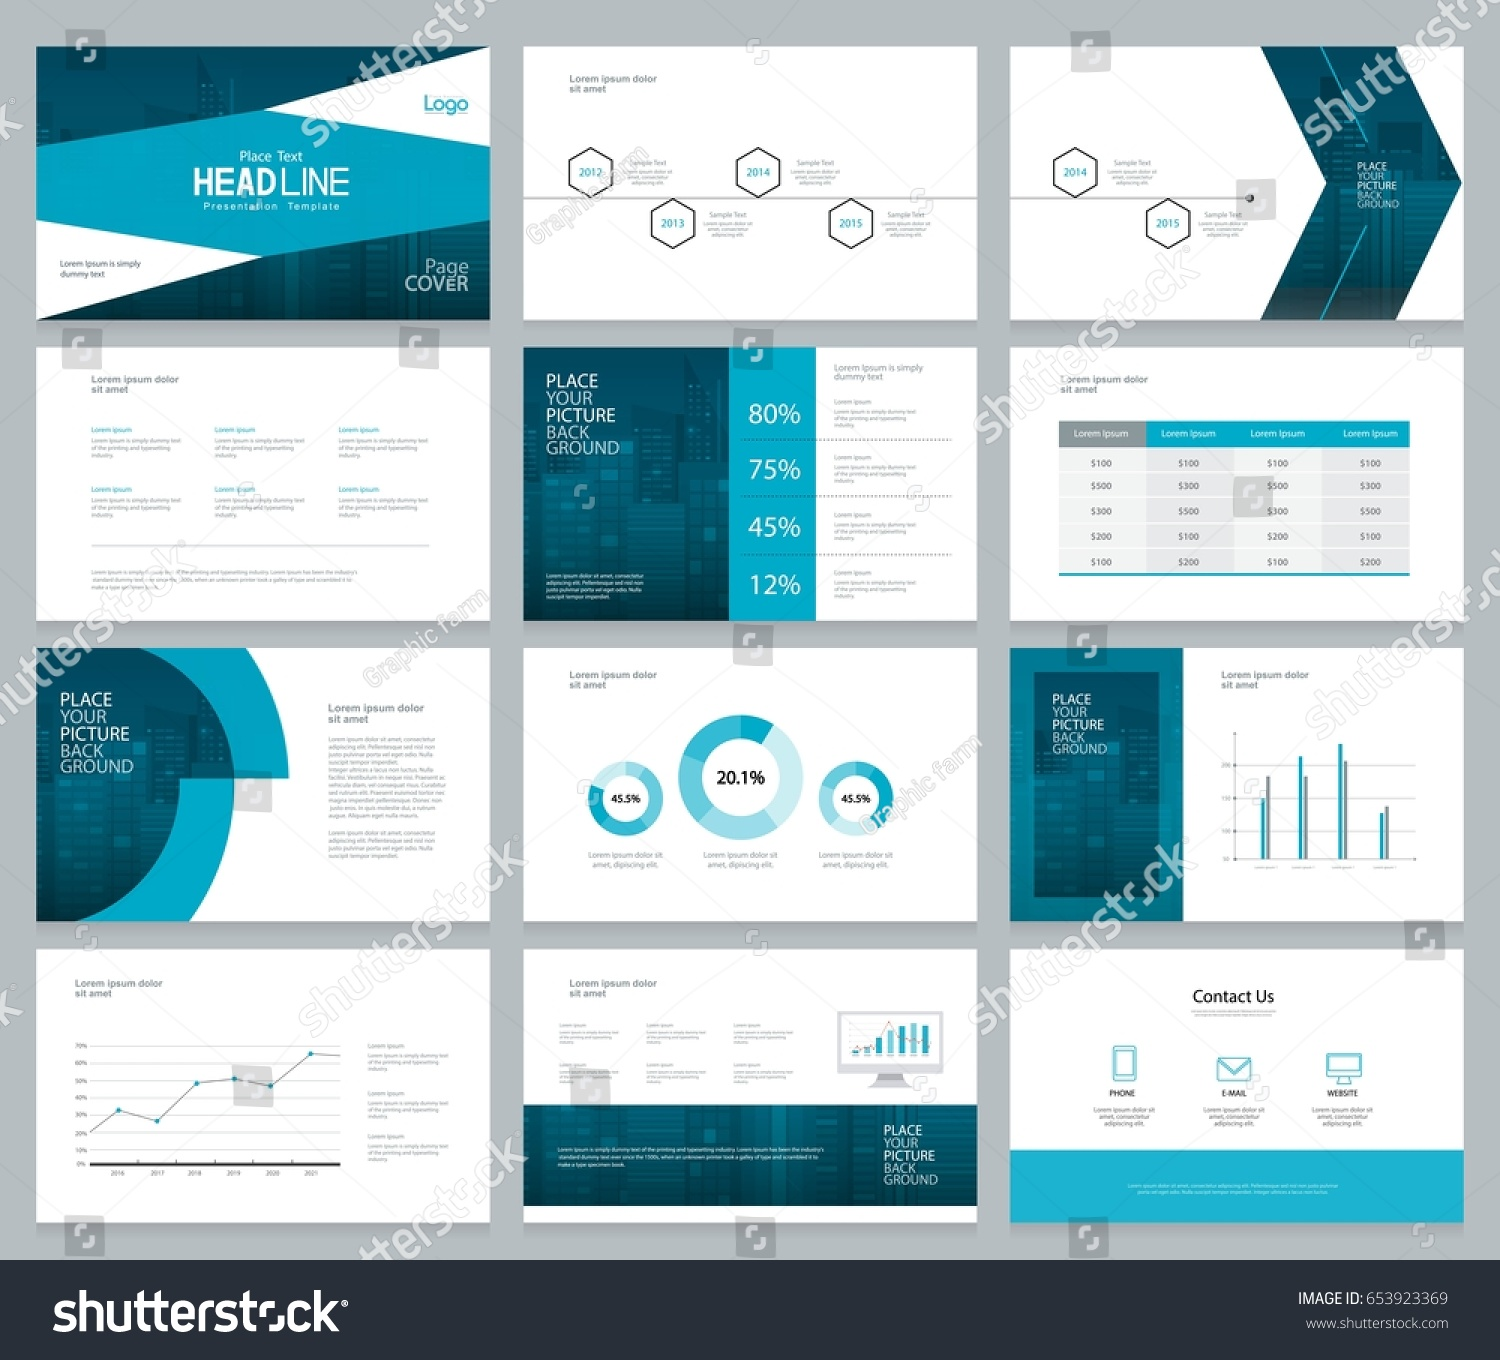 business presentation design template page layout のベクター画像